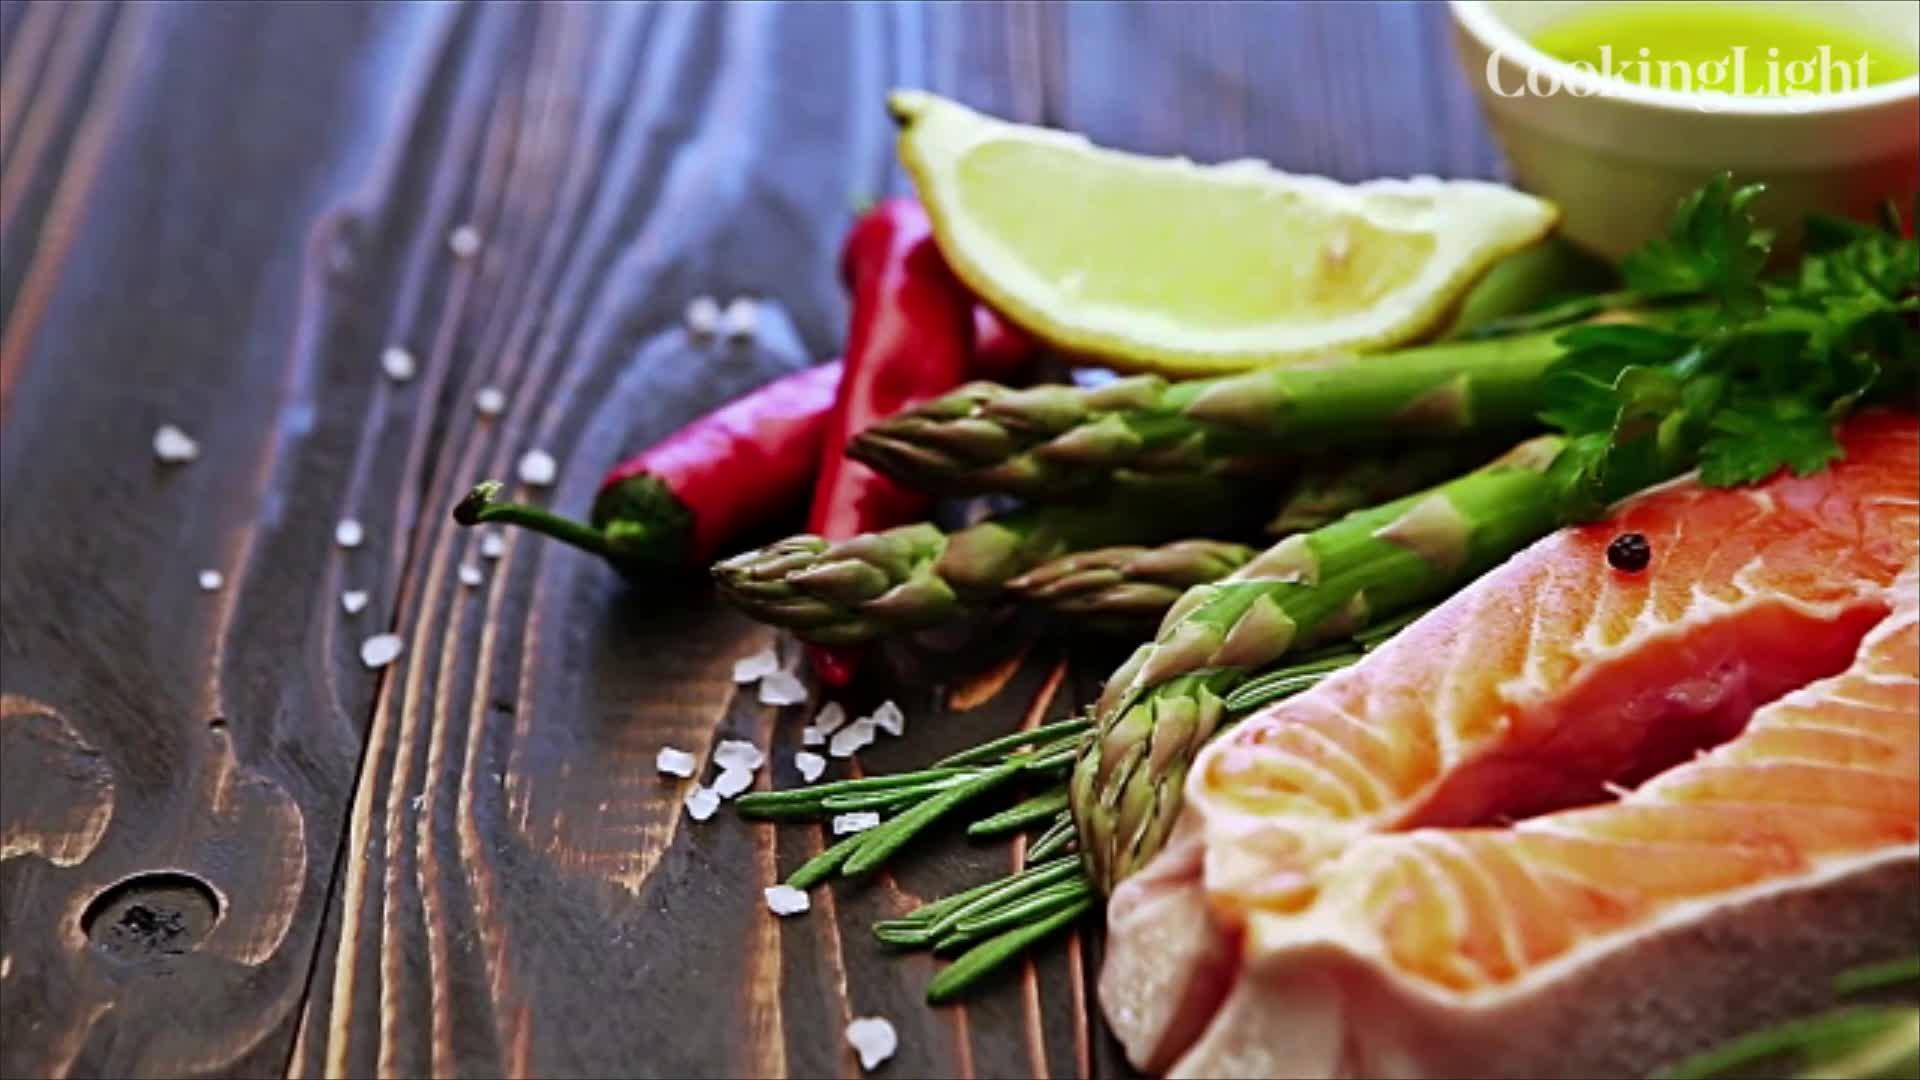 A Nutritionist Weighs in on 13 TrendySuperfoods: How Super Are They?